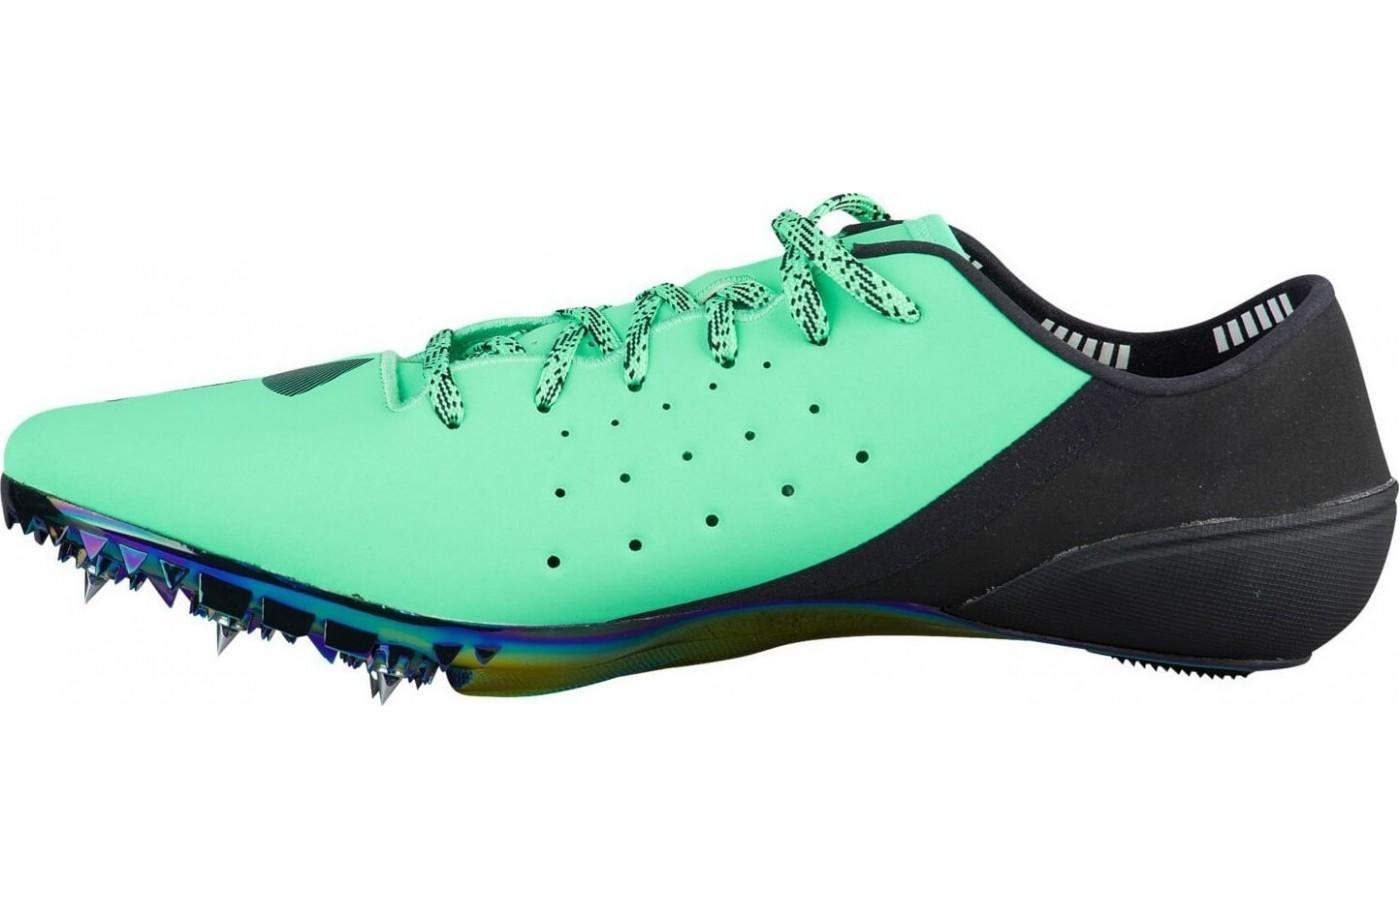 The Under Armour SpeedForm Sprint Pro has a seamless heel cup to lock in the foot